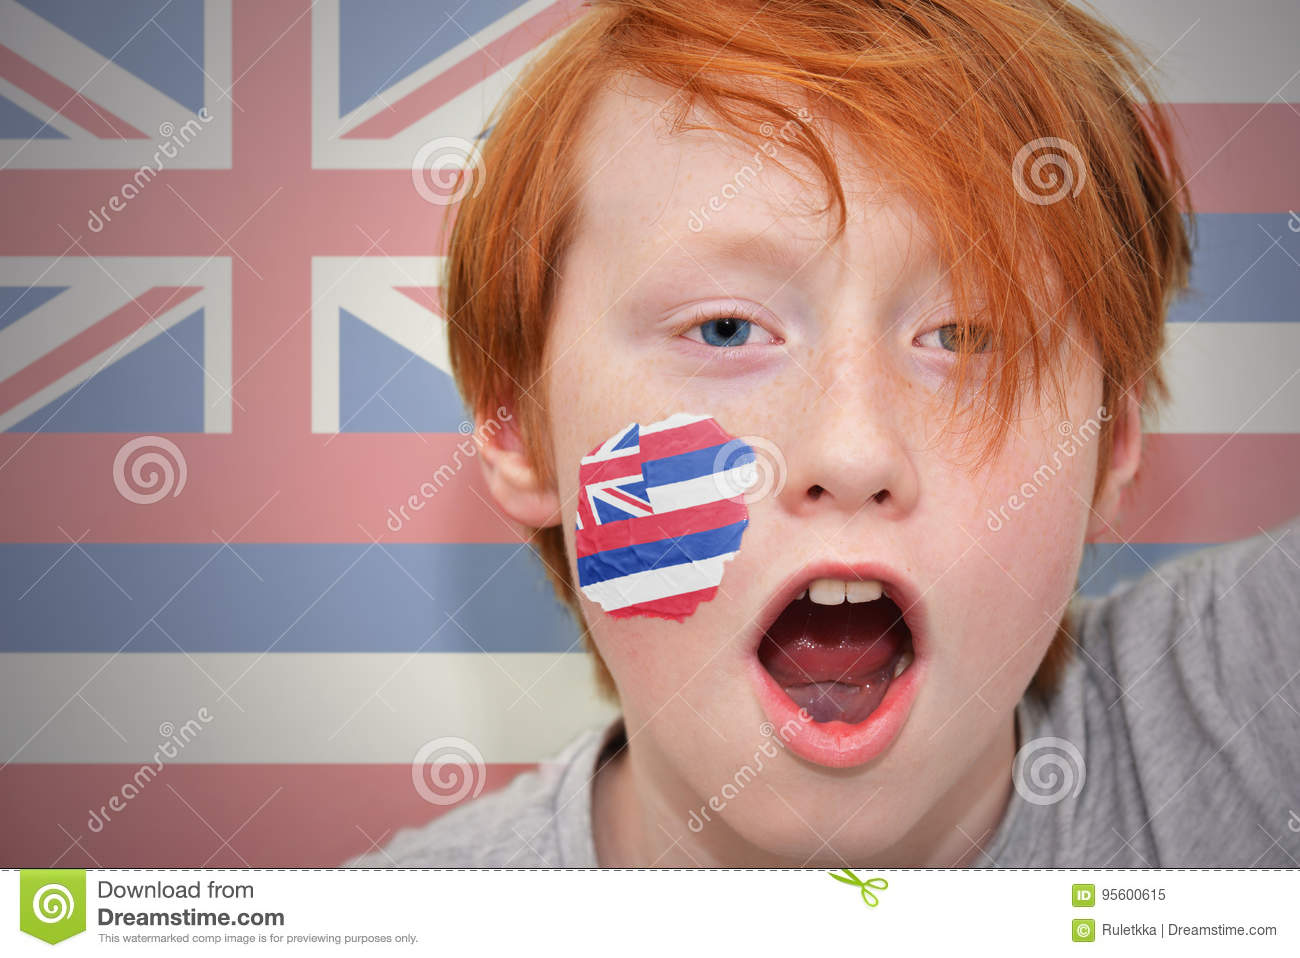 Redhead fan boy with hawaii state flag painted on his face.